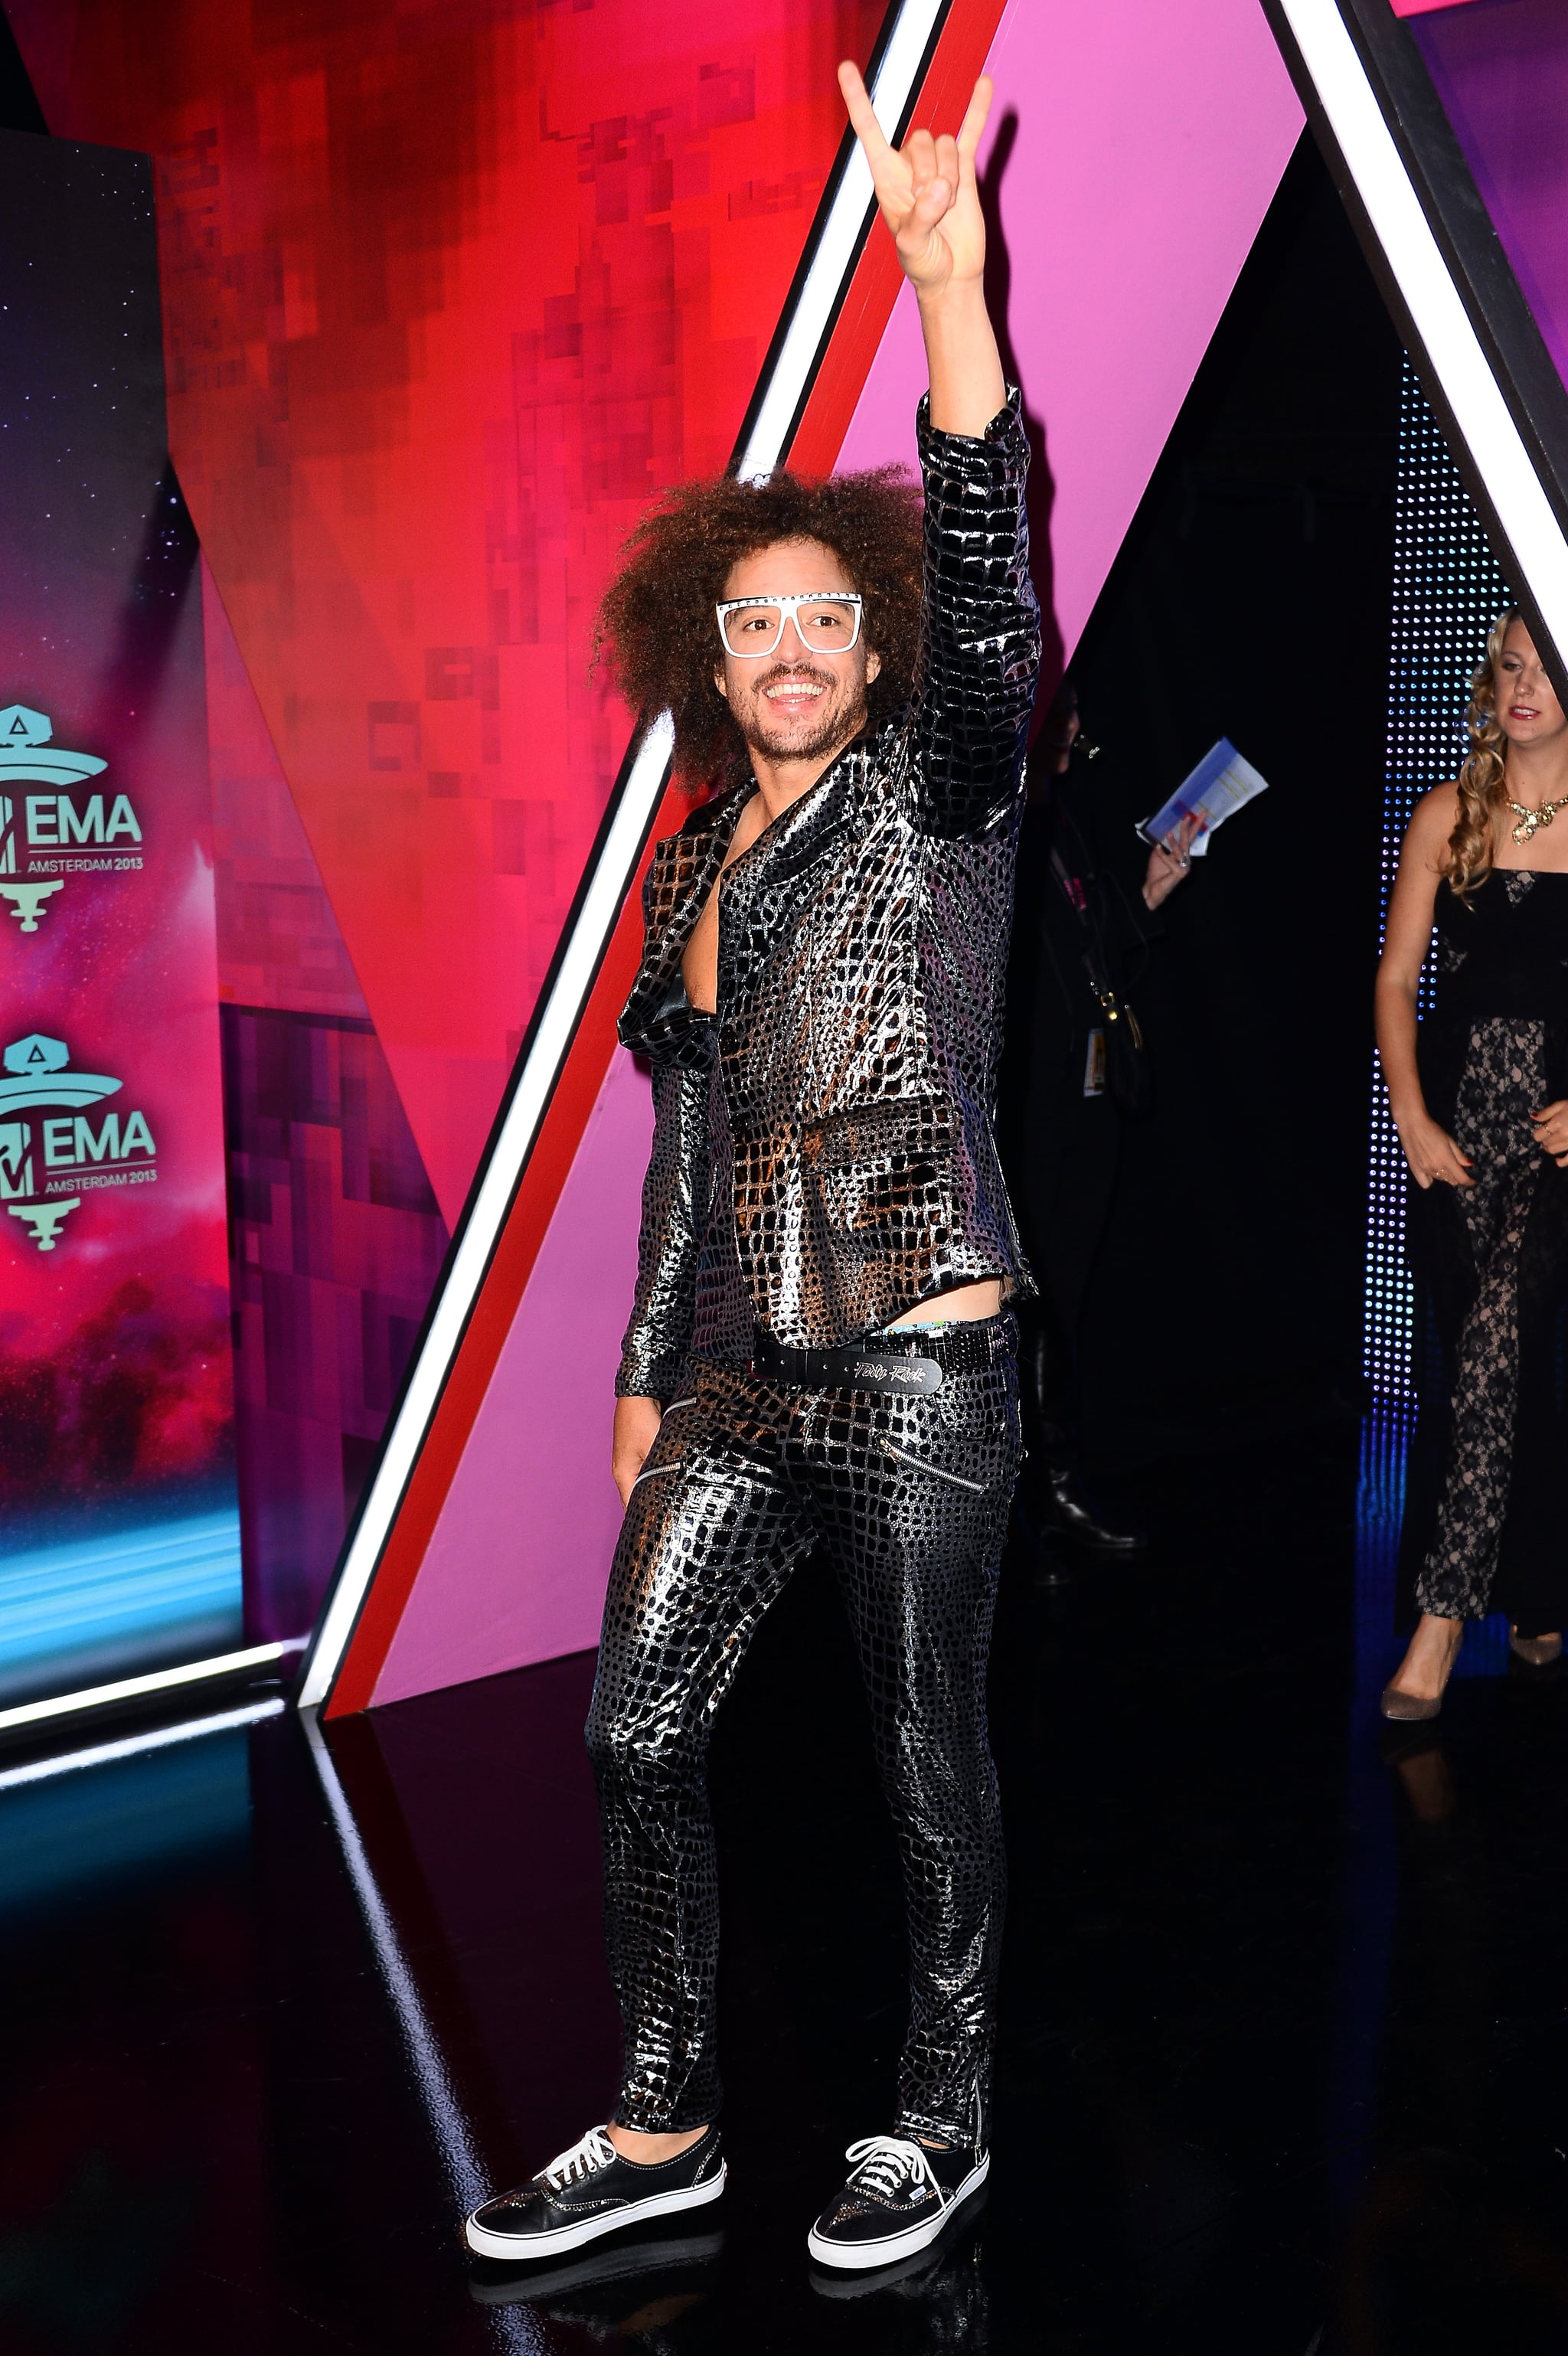 Redfoo arrived to host the MTV EMAs.